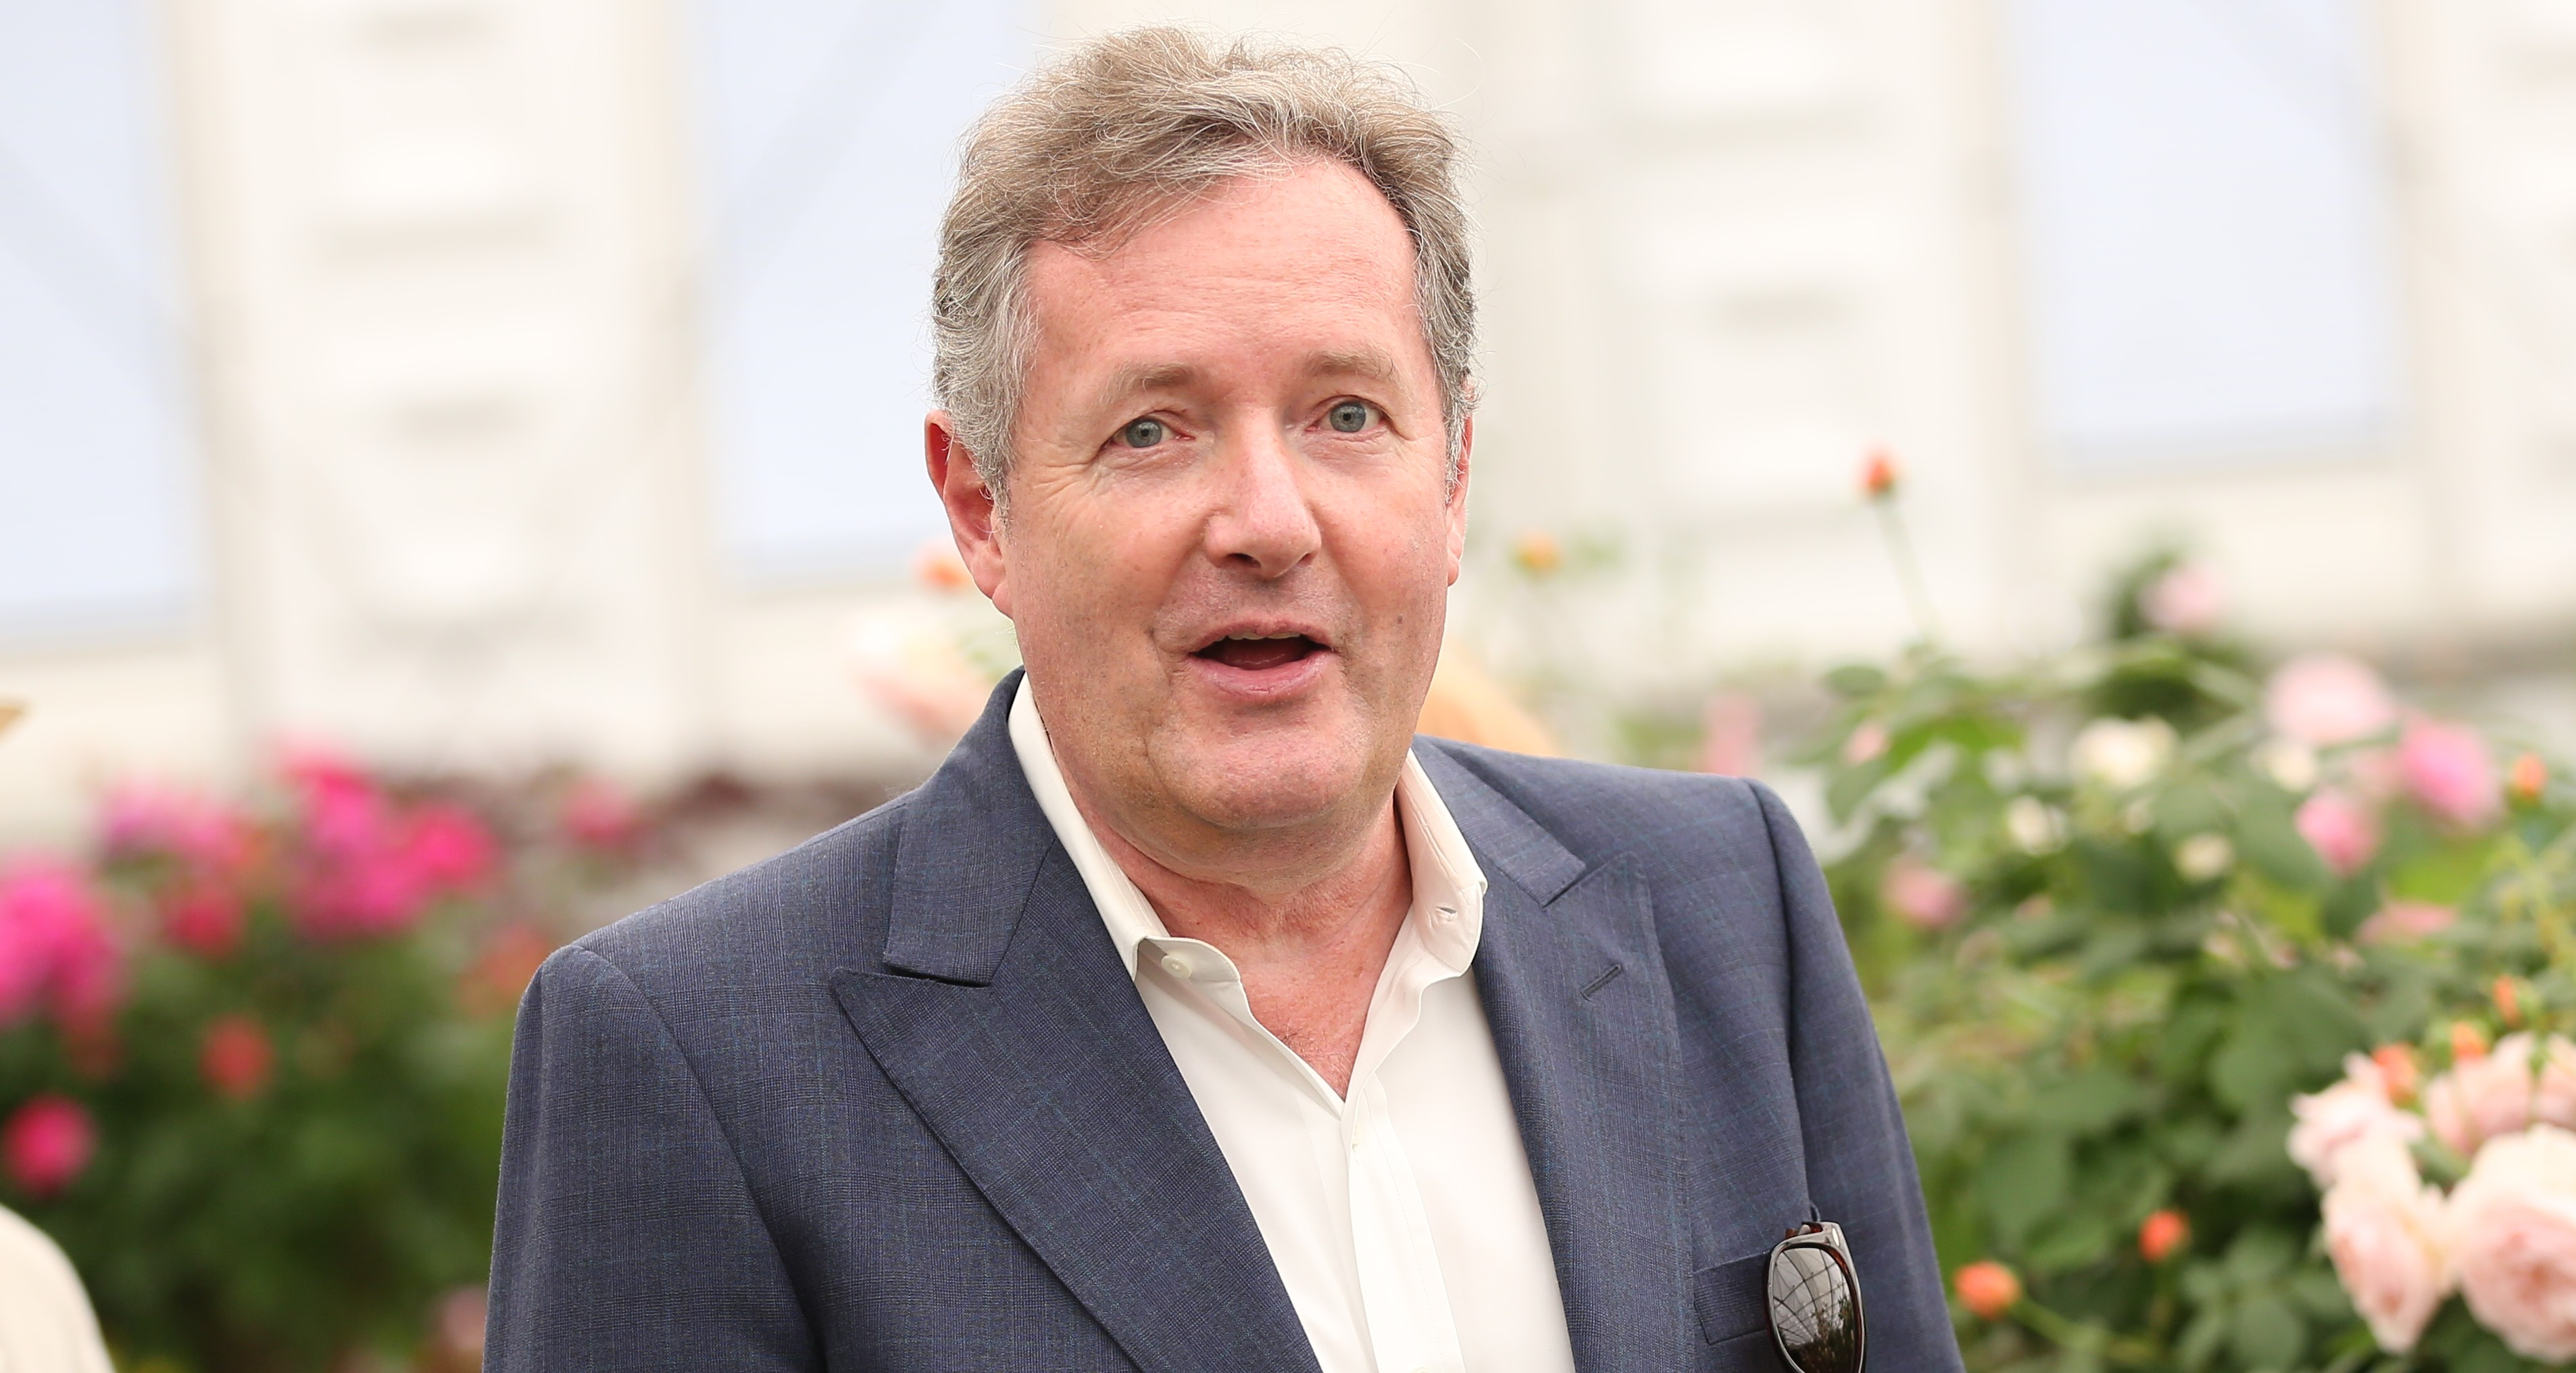 Piers Morgan's current contract with GMB up before Christmas